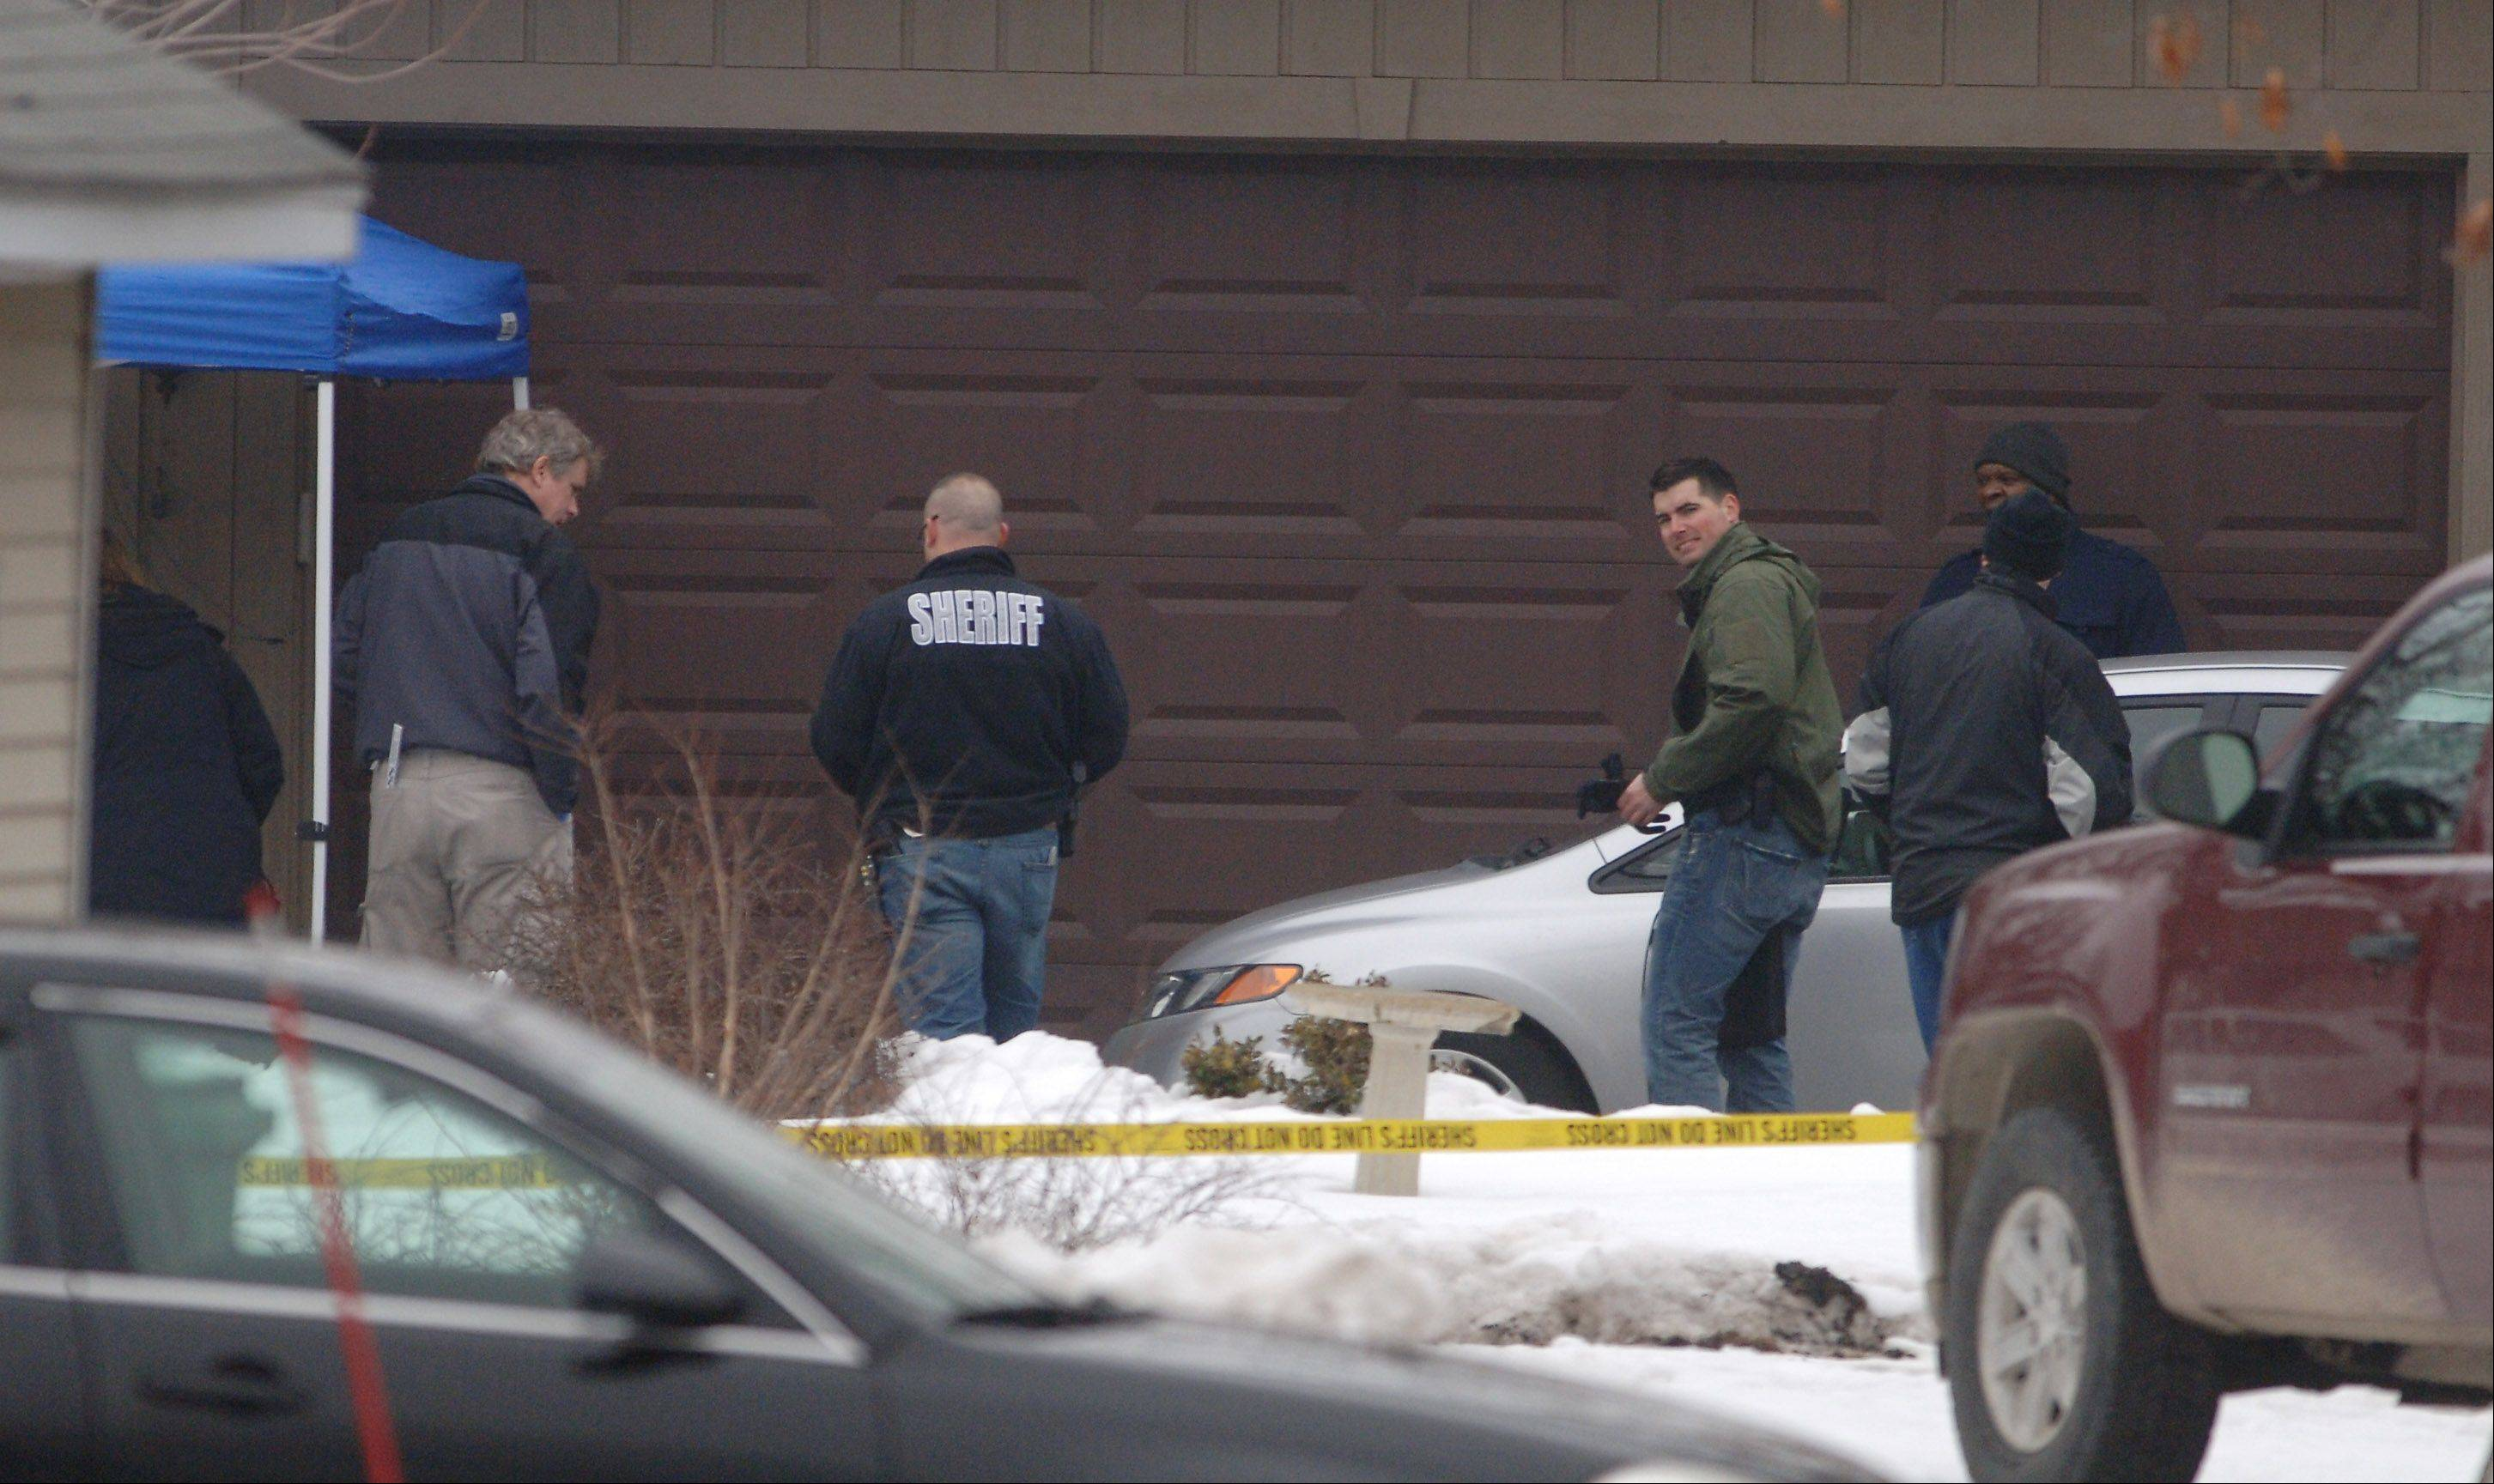 Police officials investigate the murder of Diane VanDycke-Kephart, 61, near Antioch in March.